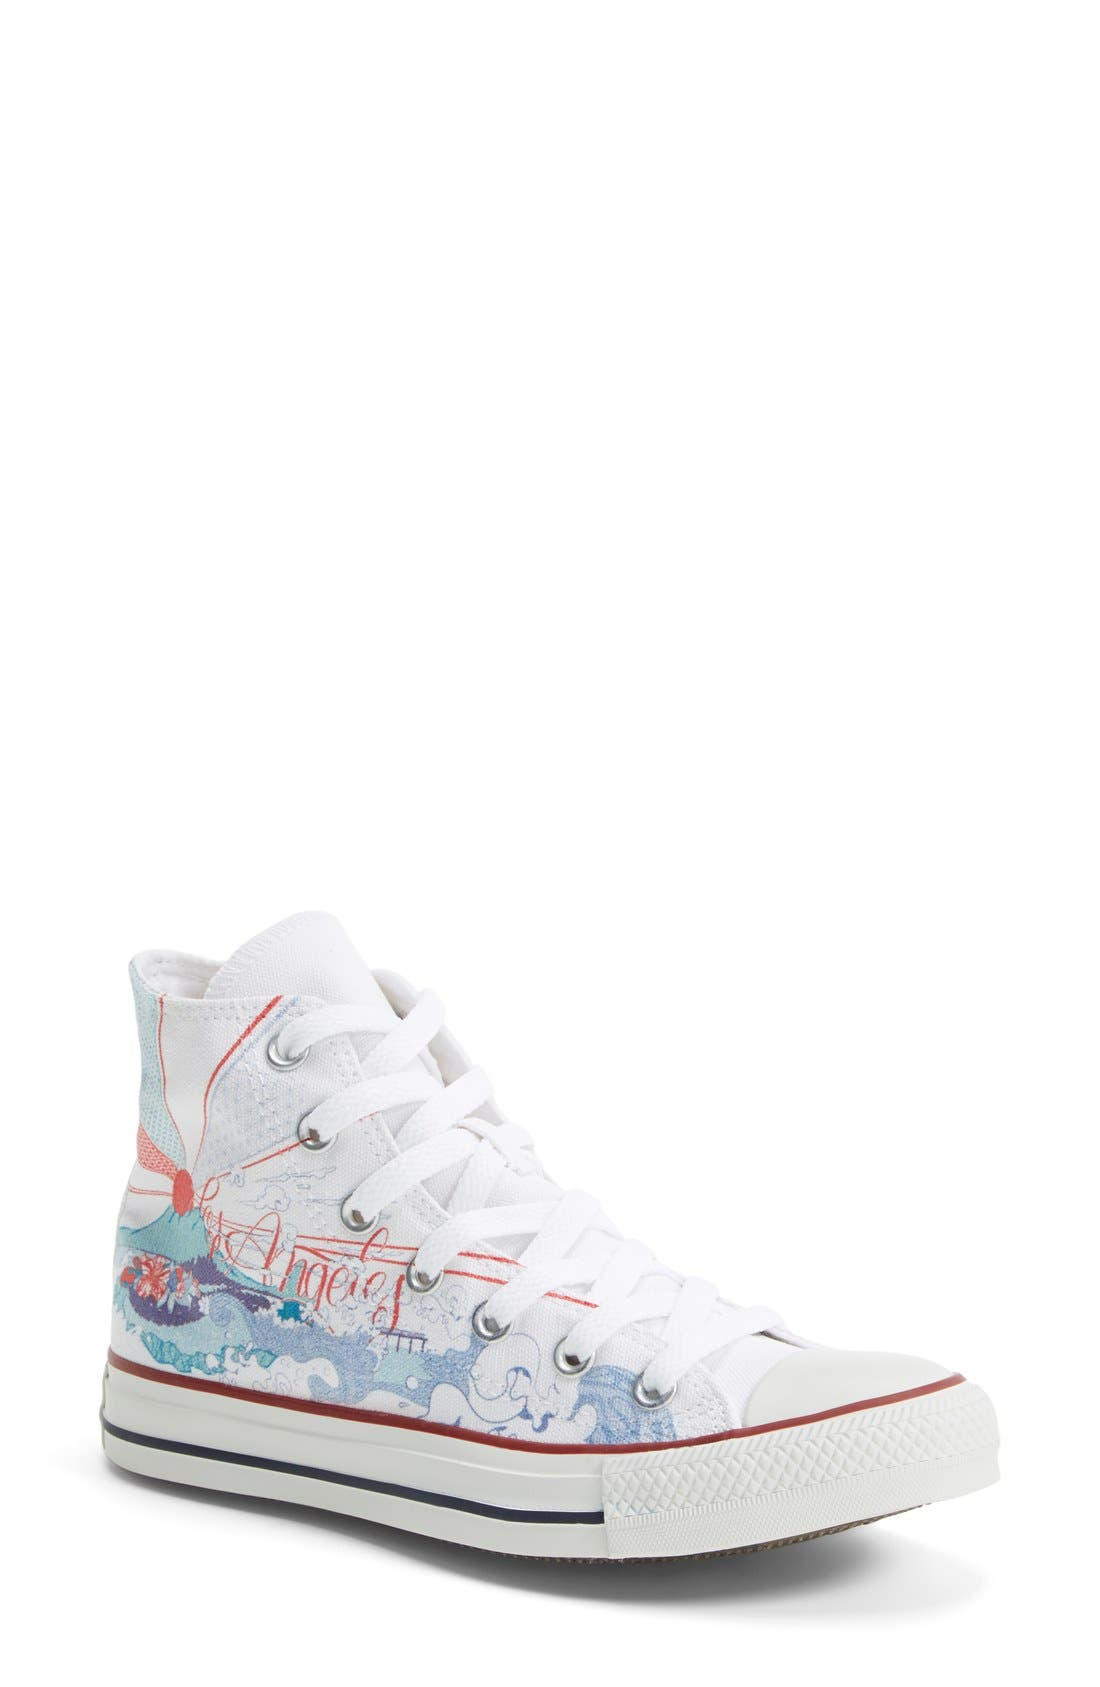 Main Image - Converse Chuck Taylor® All Star® 'Made By You - Los Angeles' High Top Sneaker (Women)